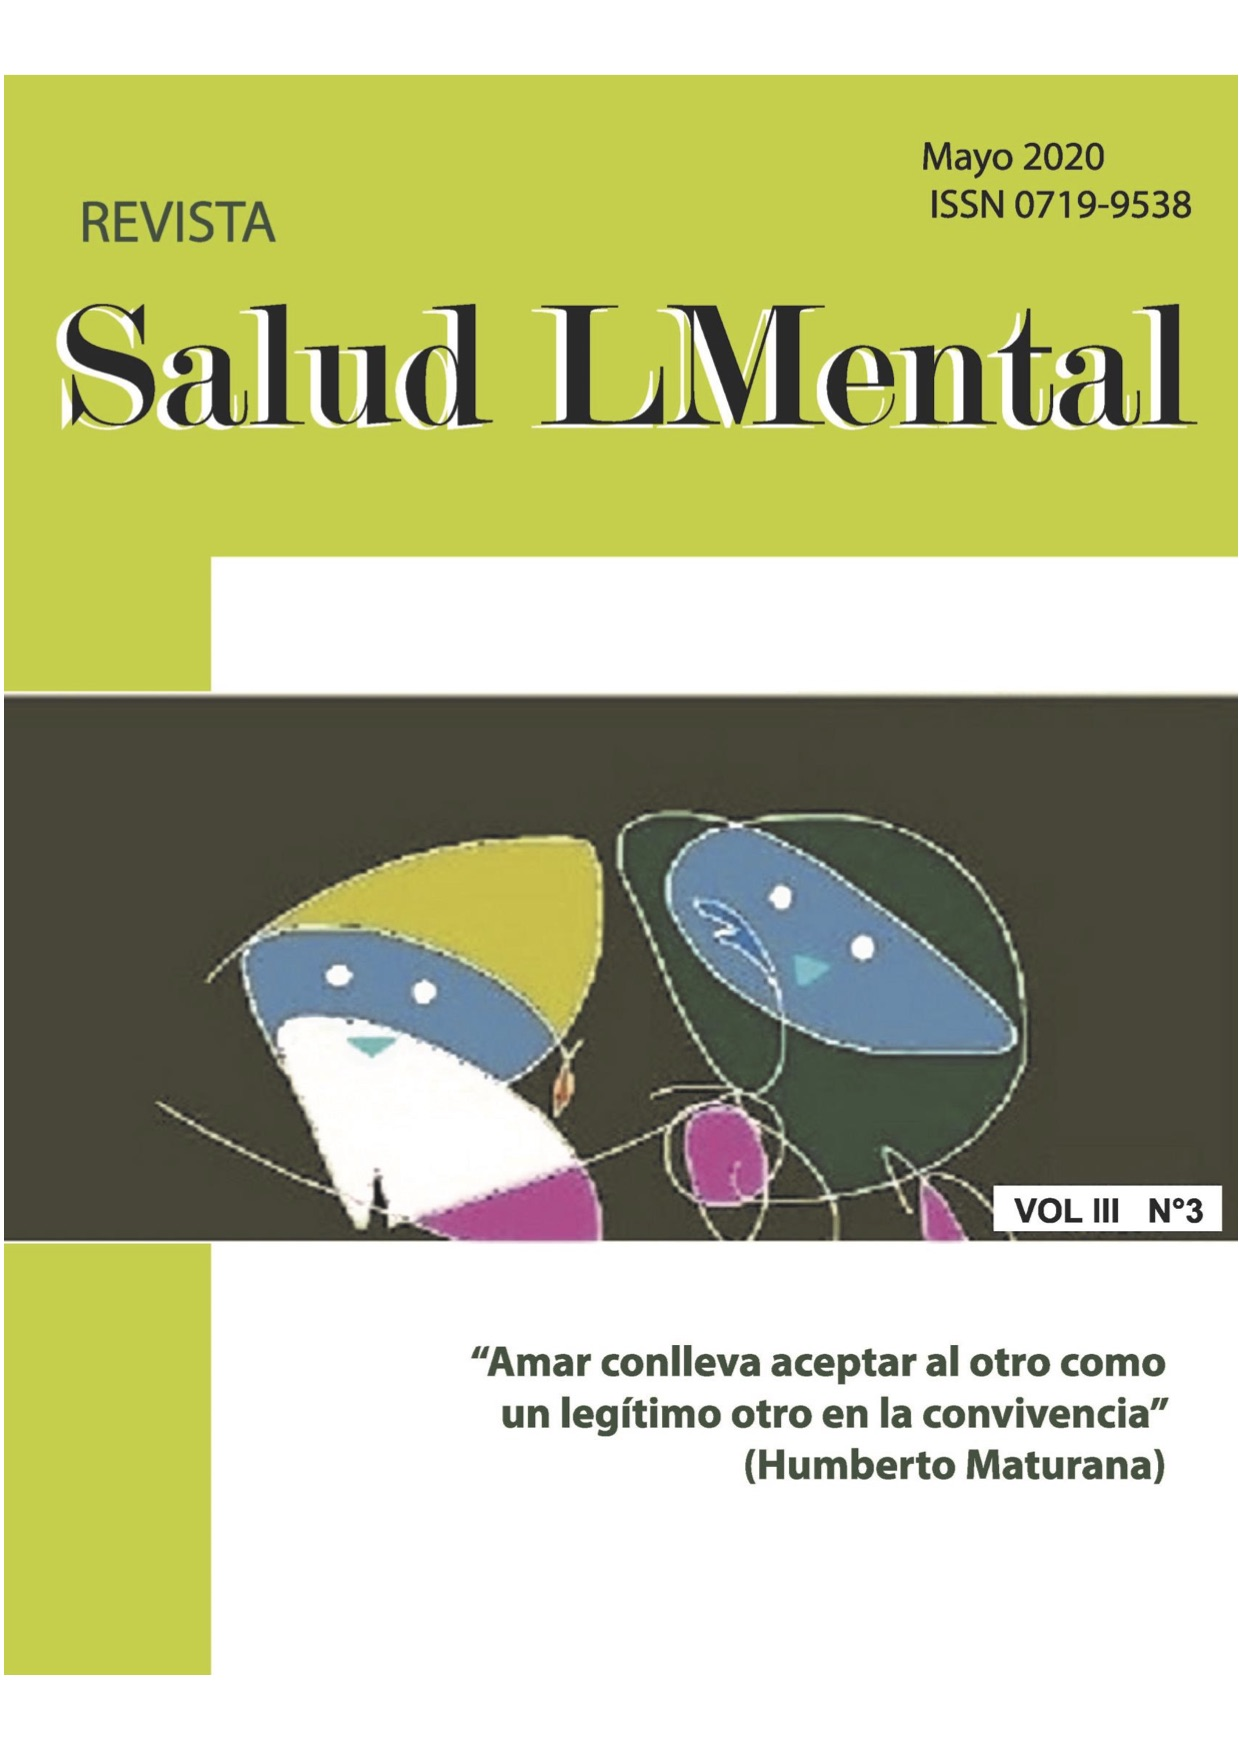 Salud LMental 3 completo